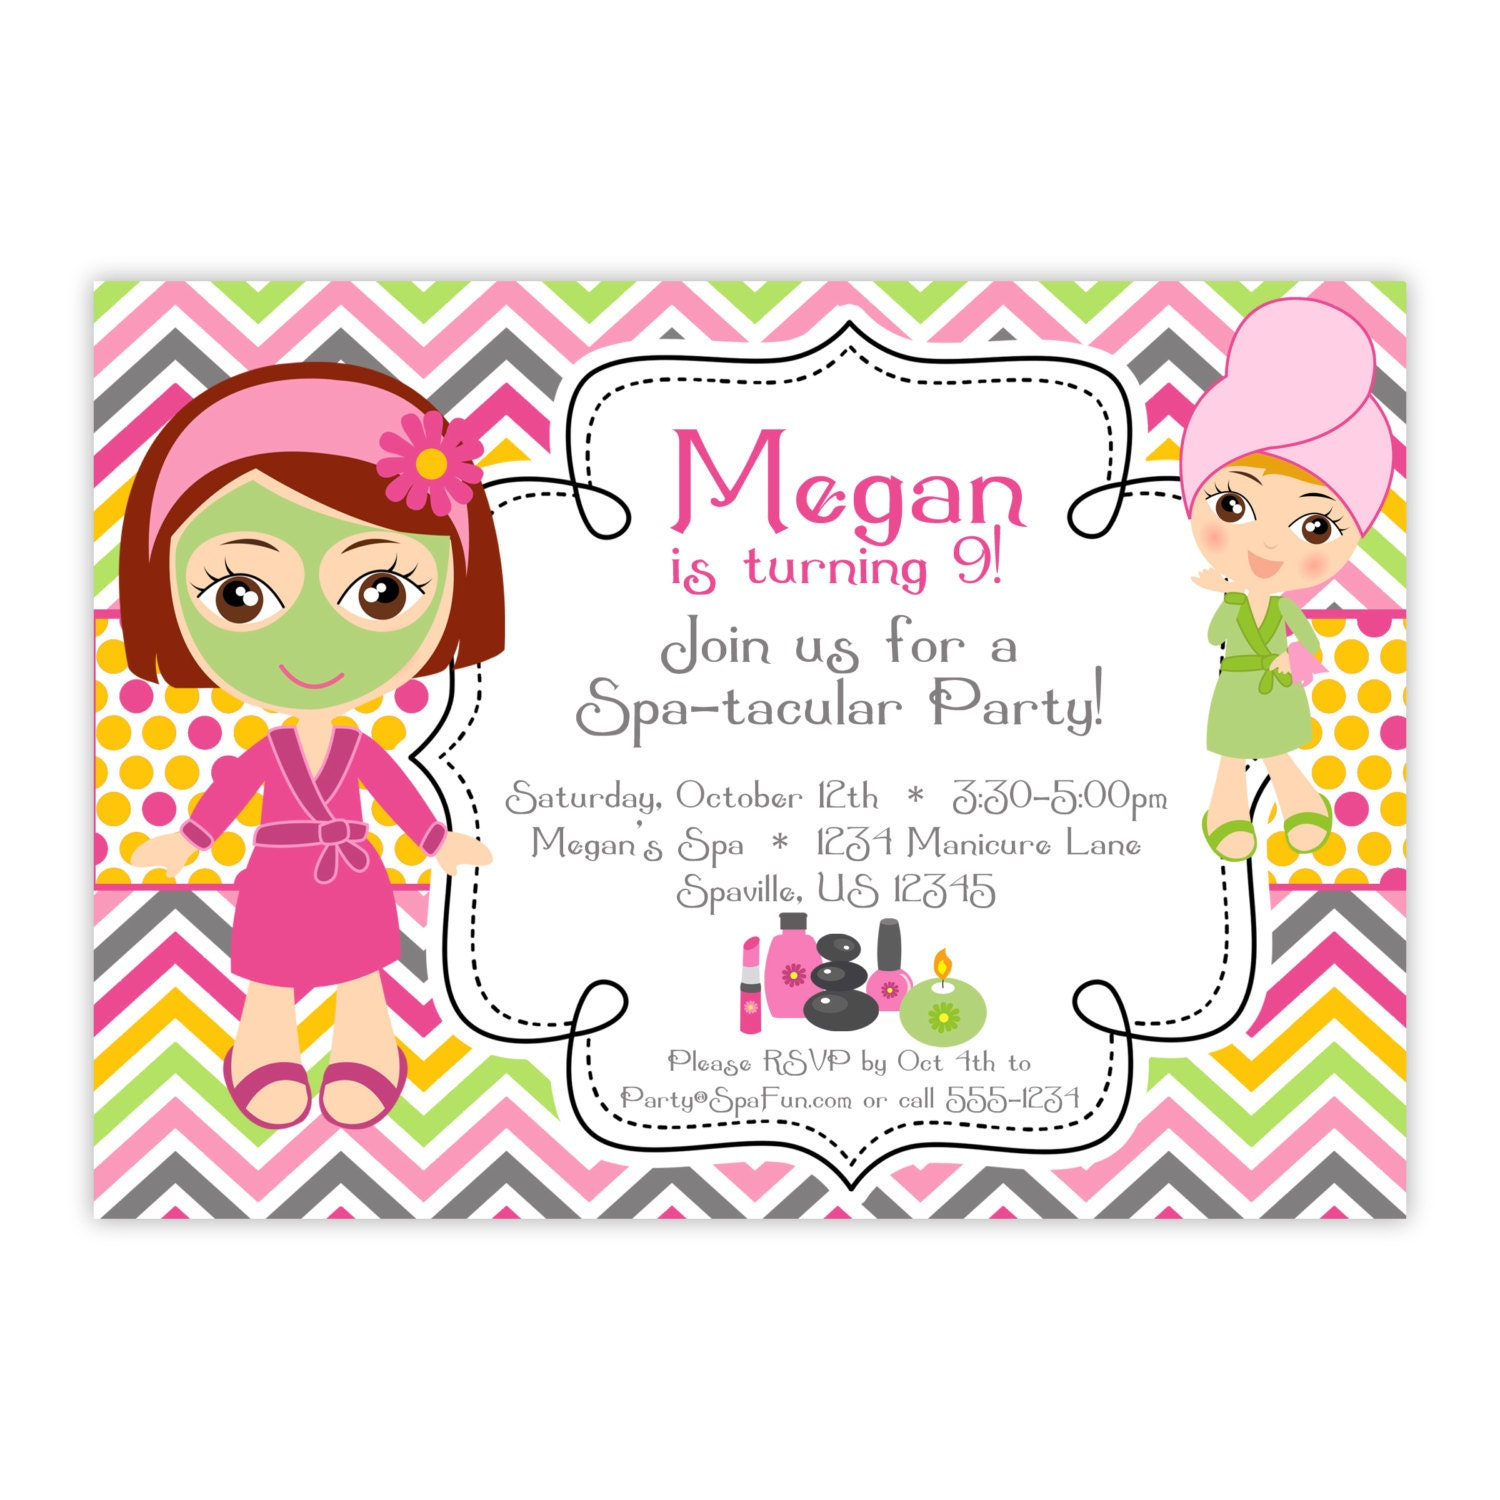 Spa Party Invitation Pink Orange Chevron Polka Dots